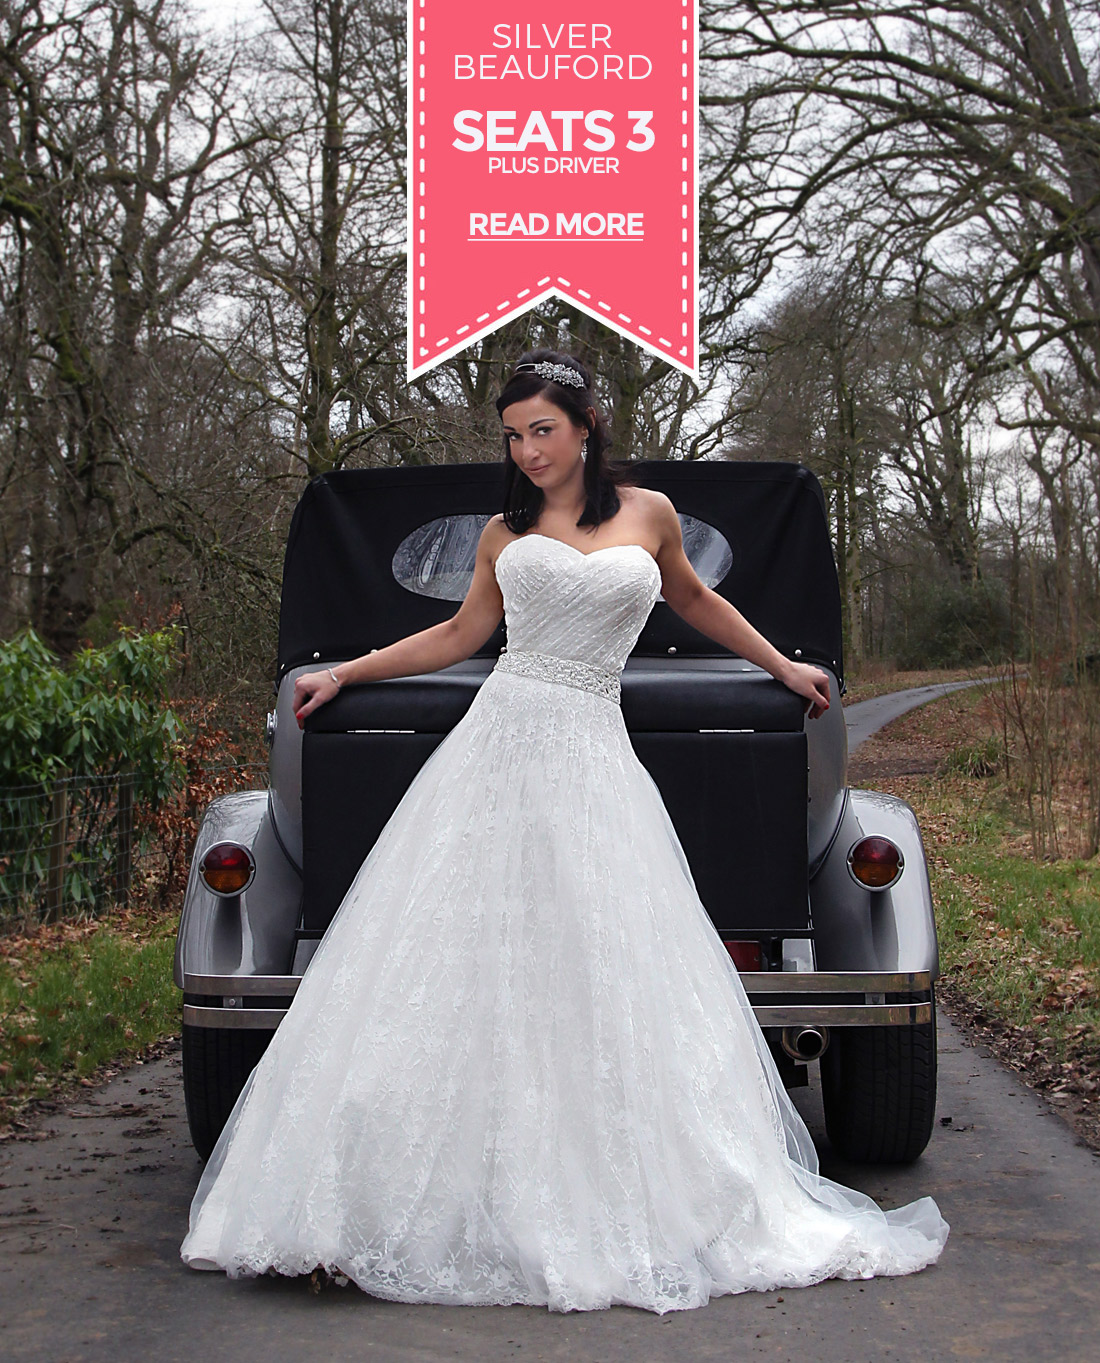 Silver bridal cars of ayrshire and glasgow and stranraer